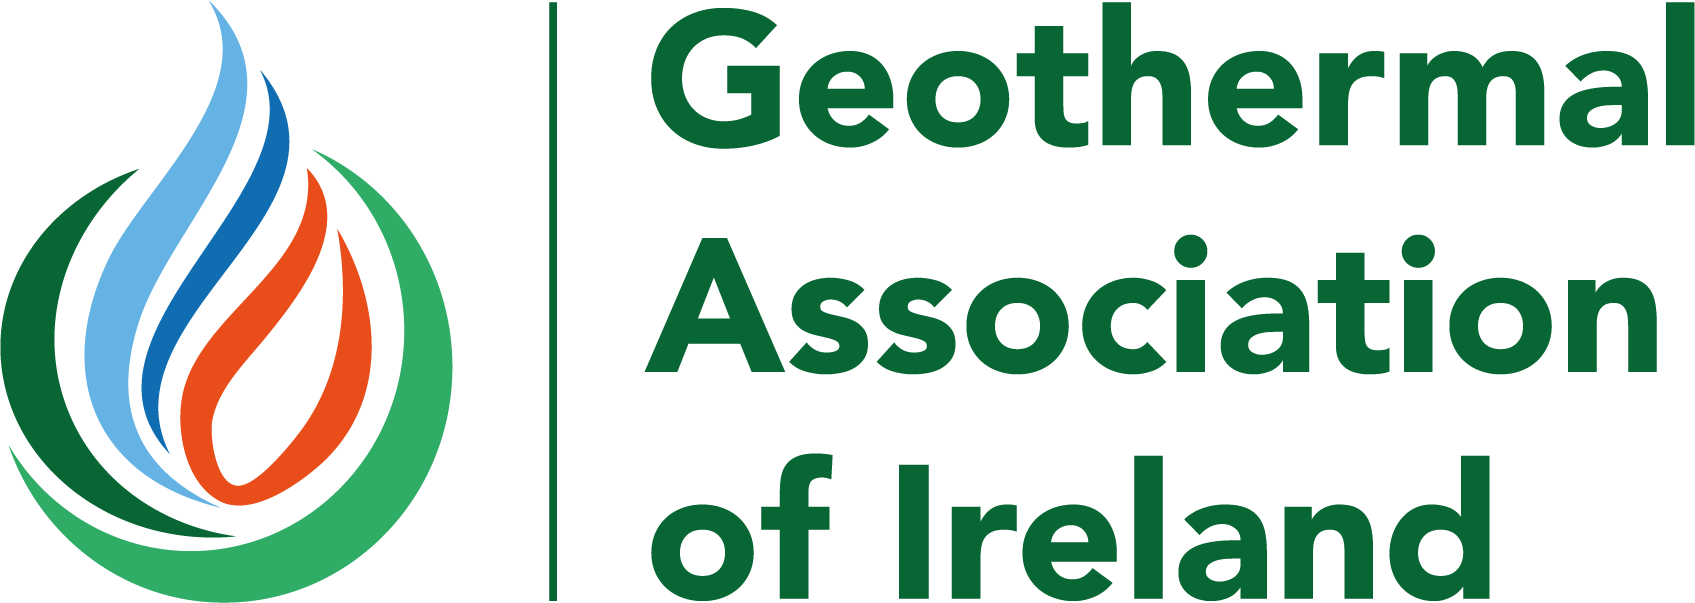 Geothermal Association of Ireland